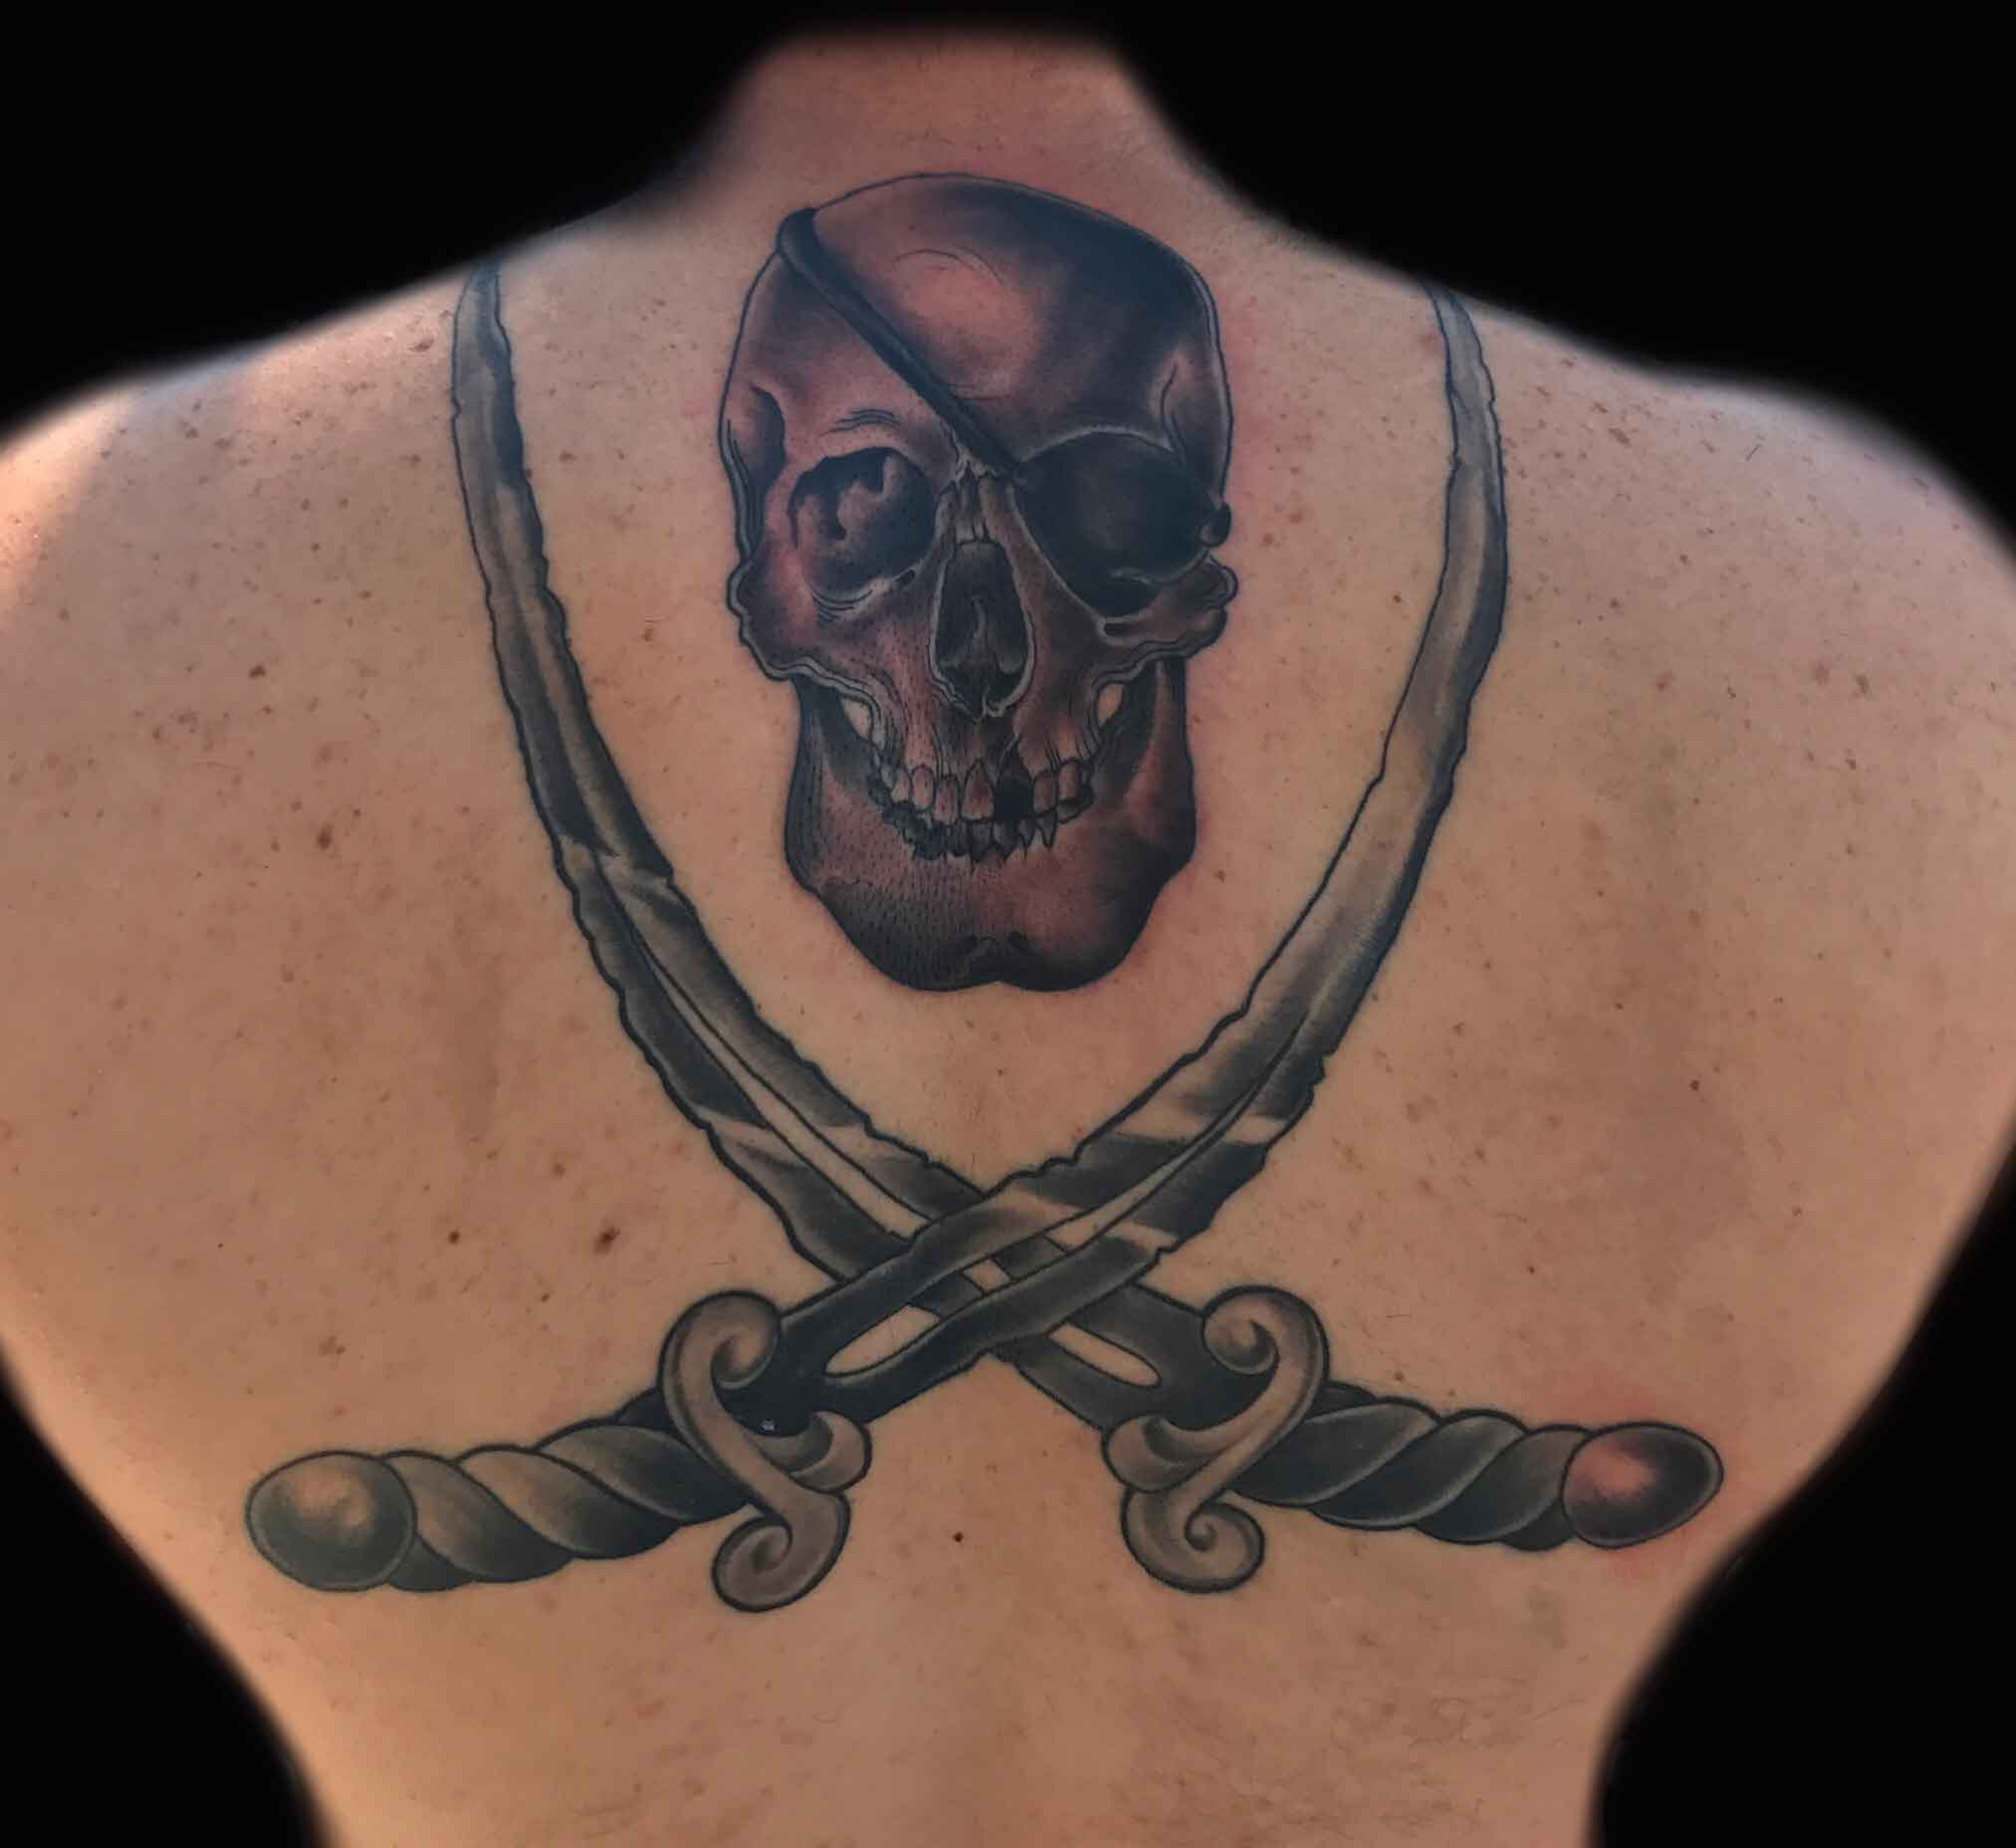 black and gray tattoo of skull snd swords by Roger Solis